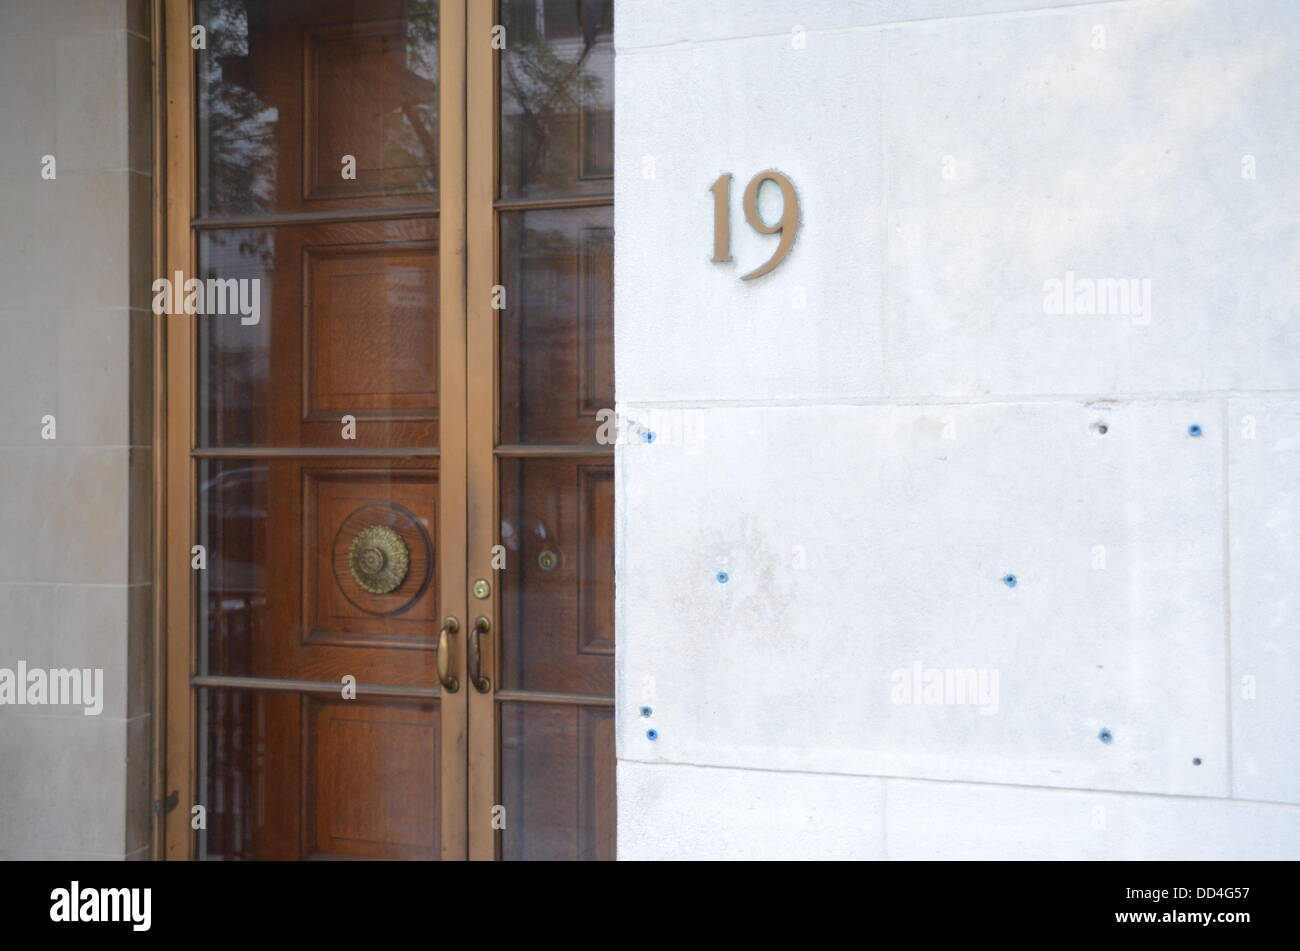 View of the number and the empty name plate of the closed M Knoedler & Co art dealership in New York City, USA, - Stock Image